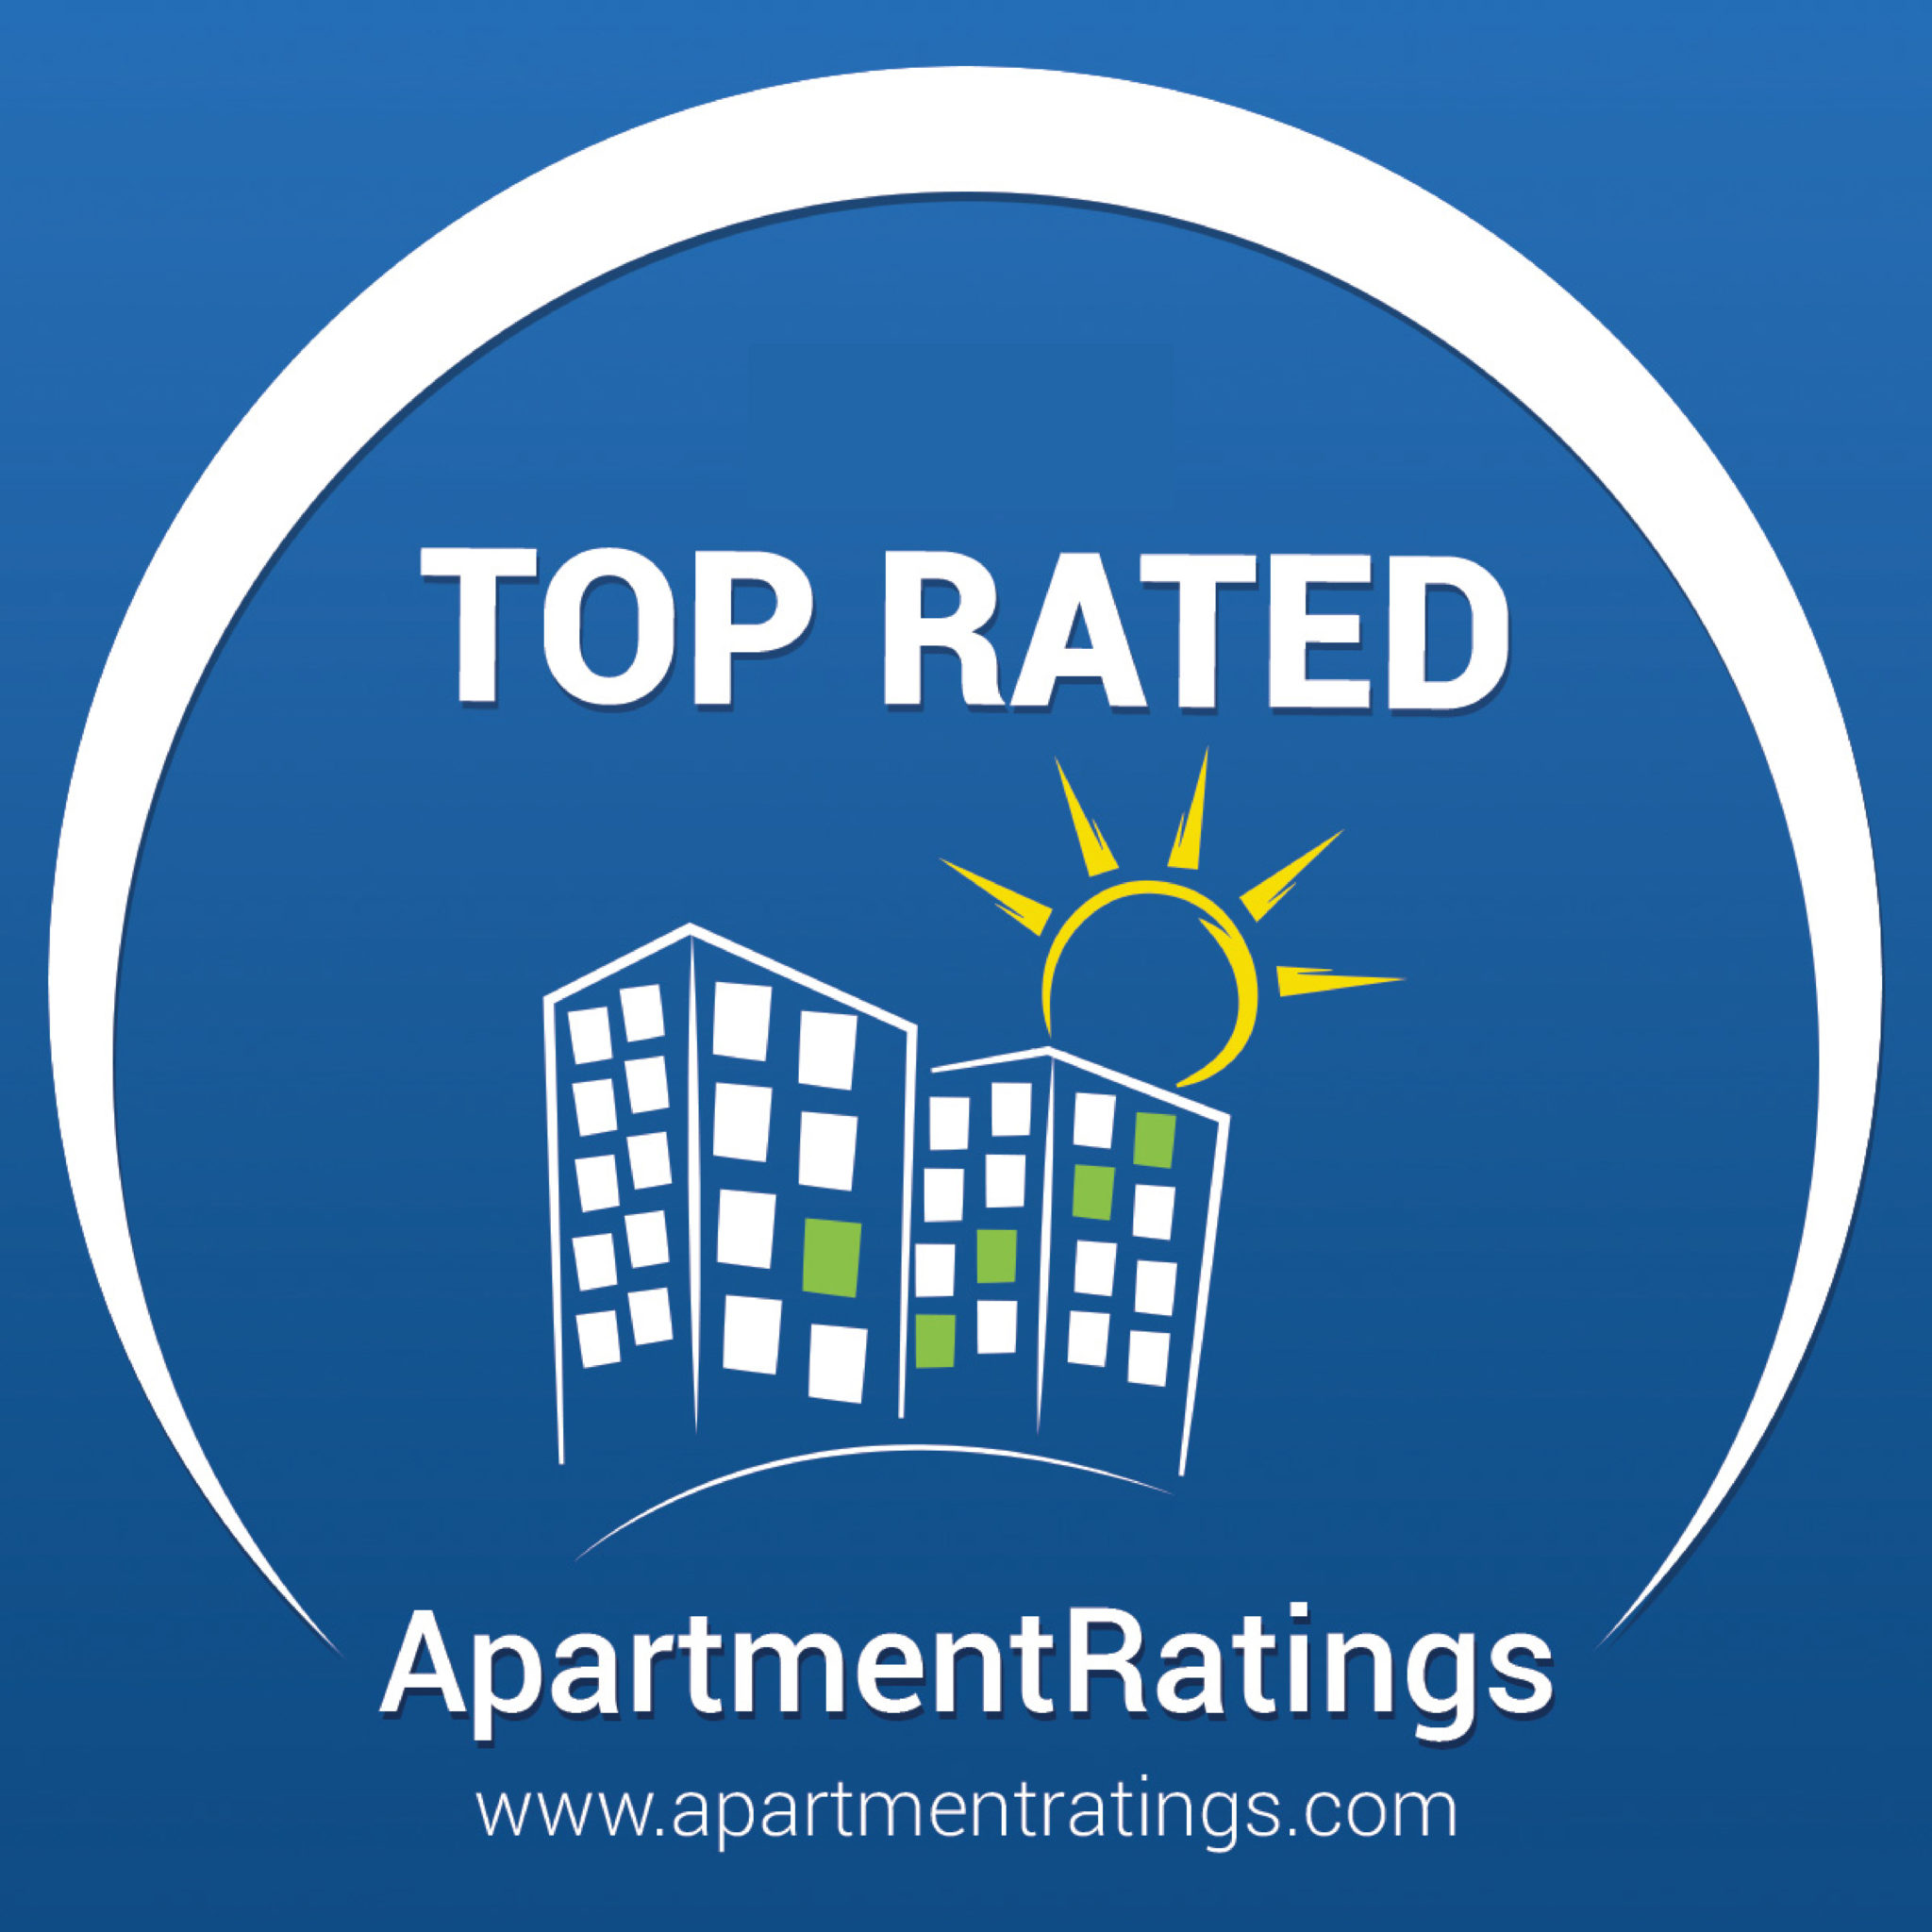 ApartmentRatings.com - 2019 Top Rated Award Winners - Live It. Love It. Guarantee